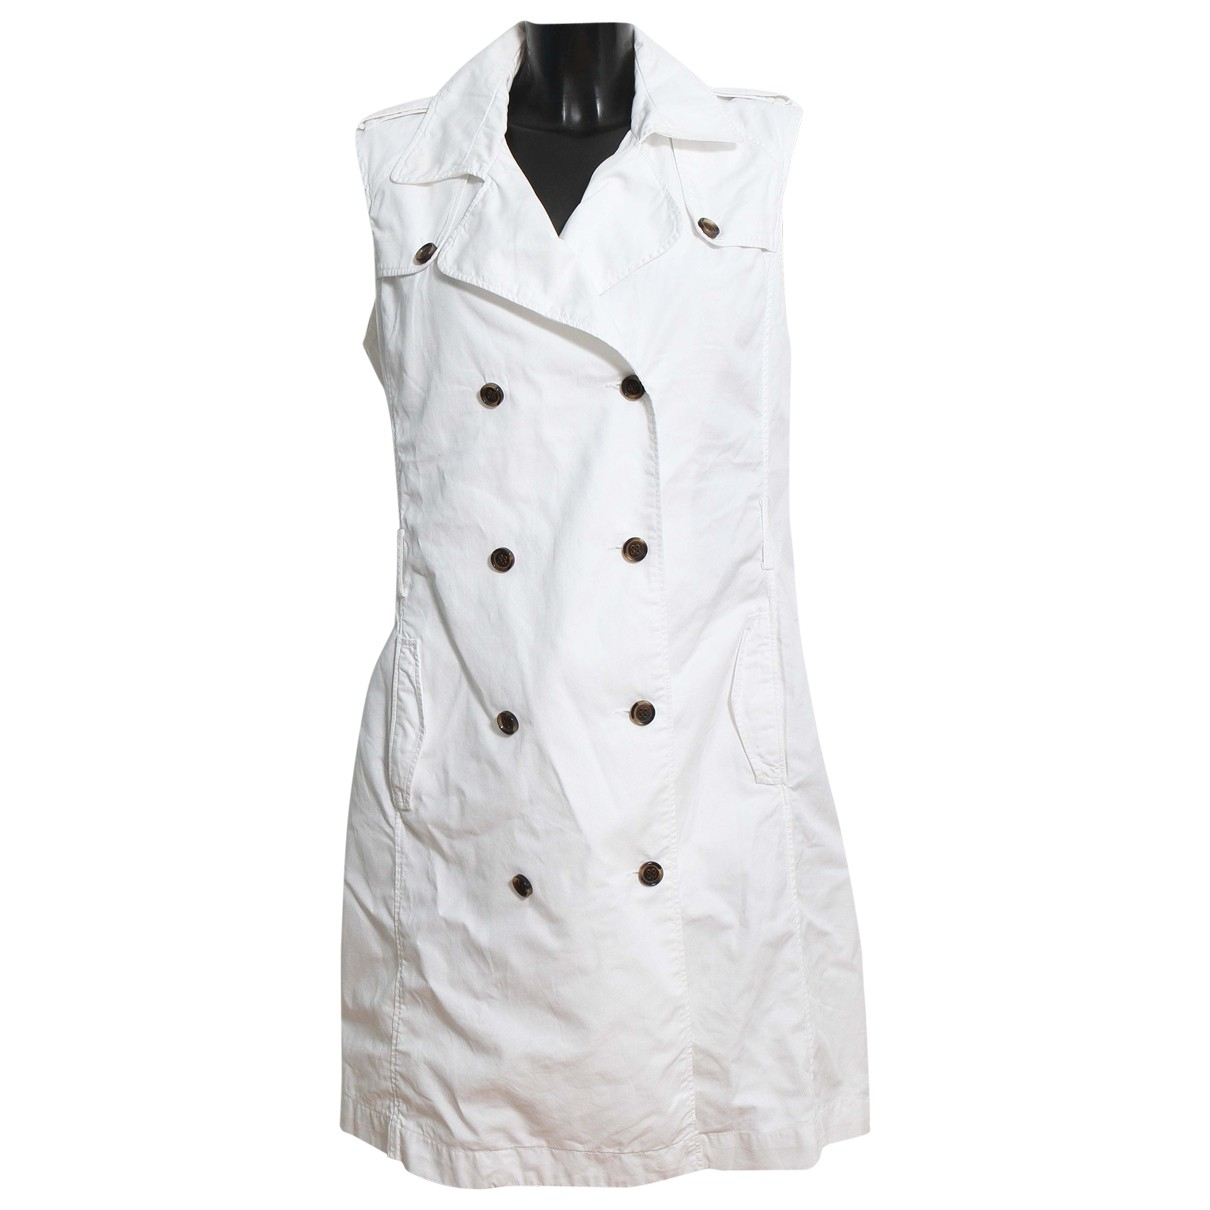 Zapa \N White Cotton dress for Women 42 FR